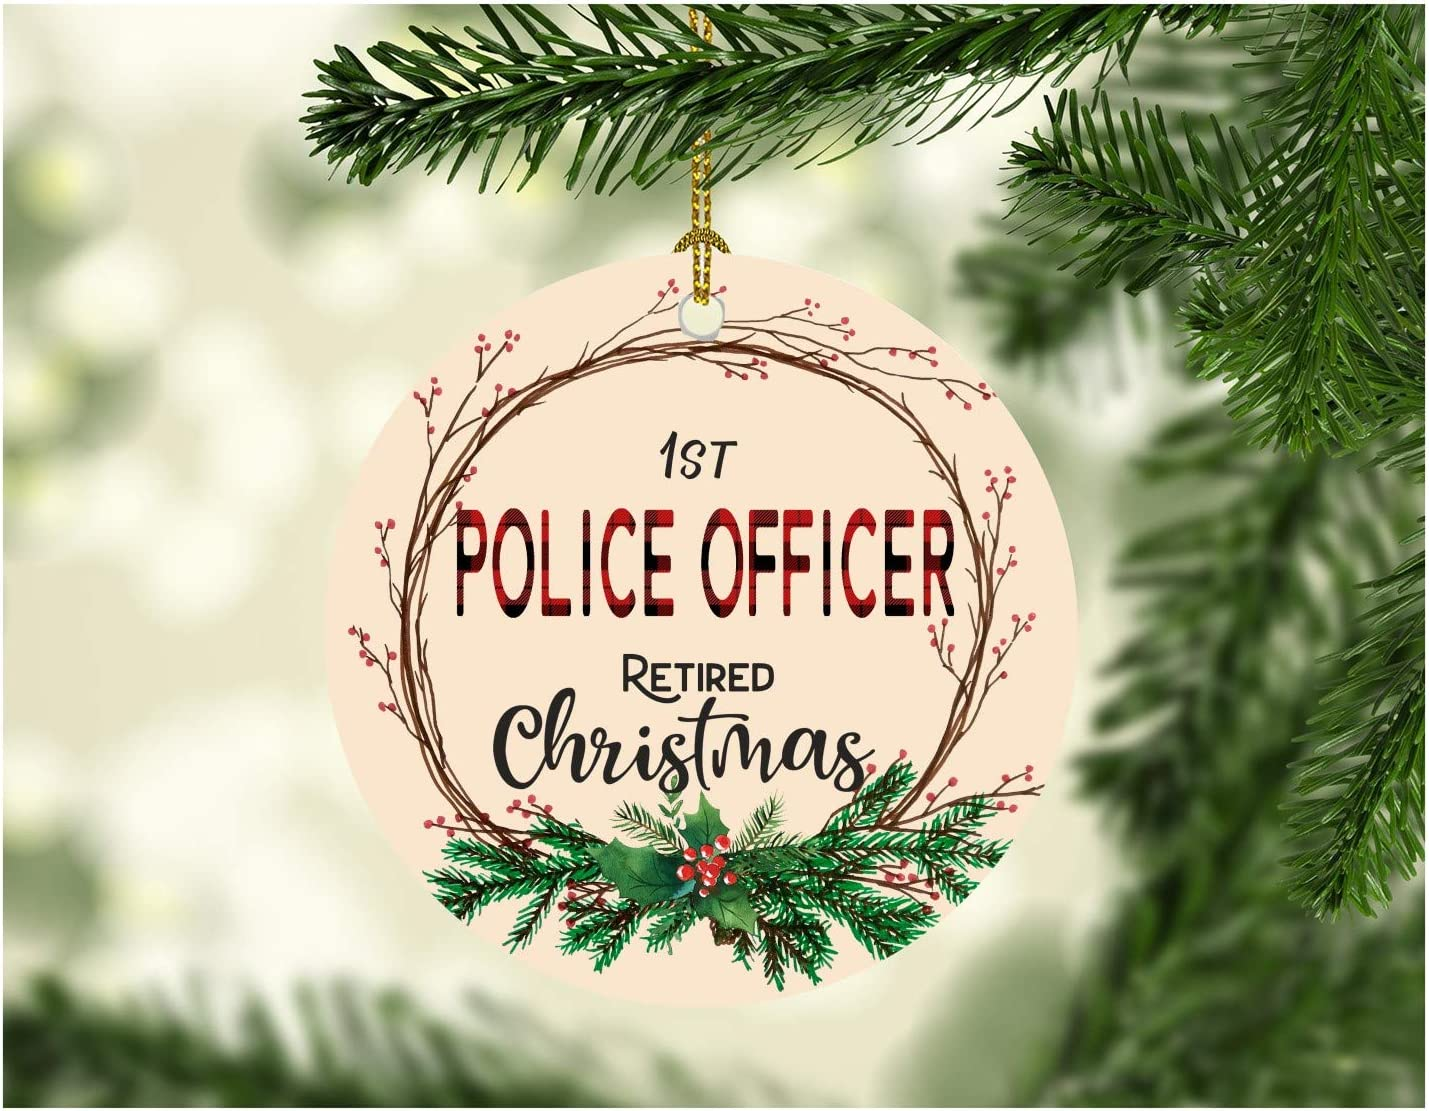 """Rustic Retirement Ornament Christmas 2020 Job Work Police Officer First Holiday Retired Gift Man Dad Brother Uncle Grandpa Xmas Decoration Tree Party Present 3"""" MDF Plastic White"""